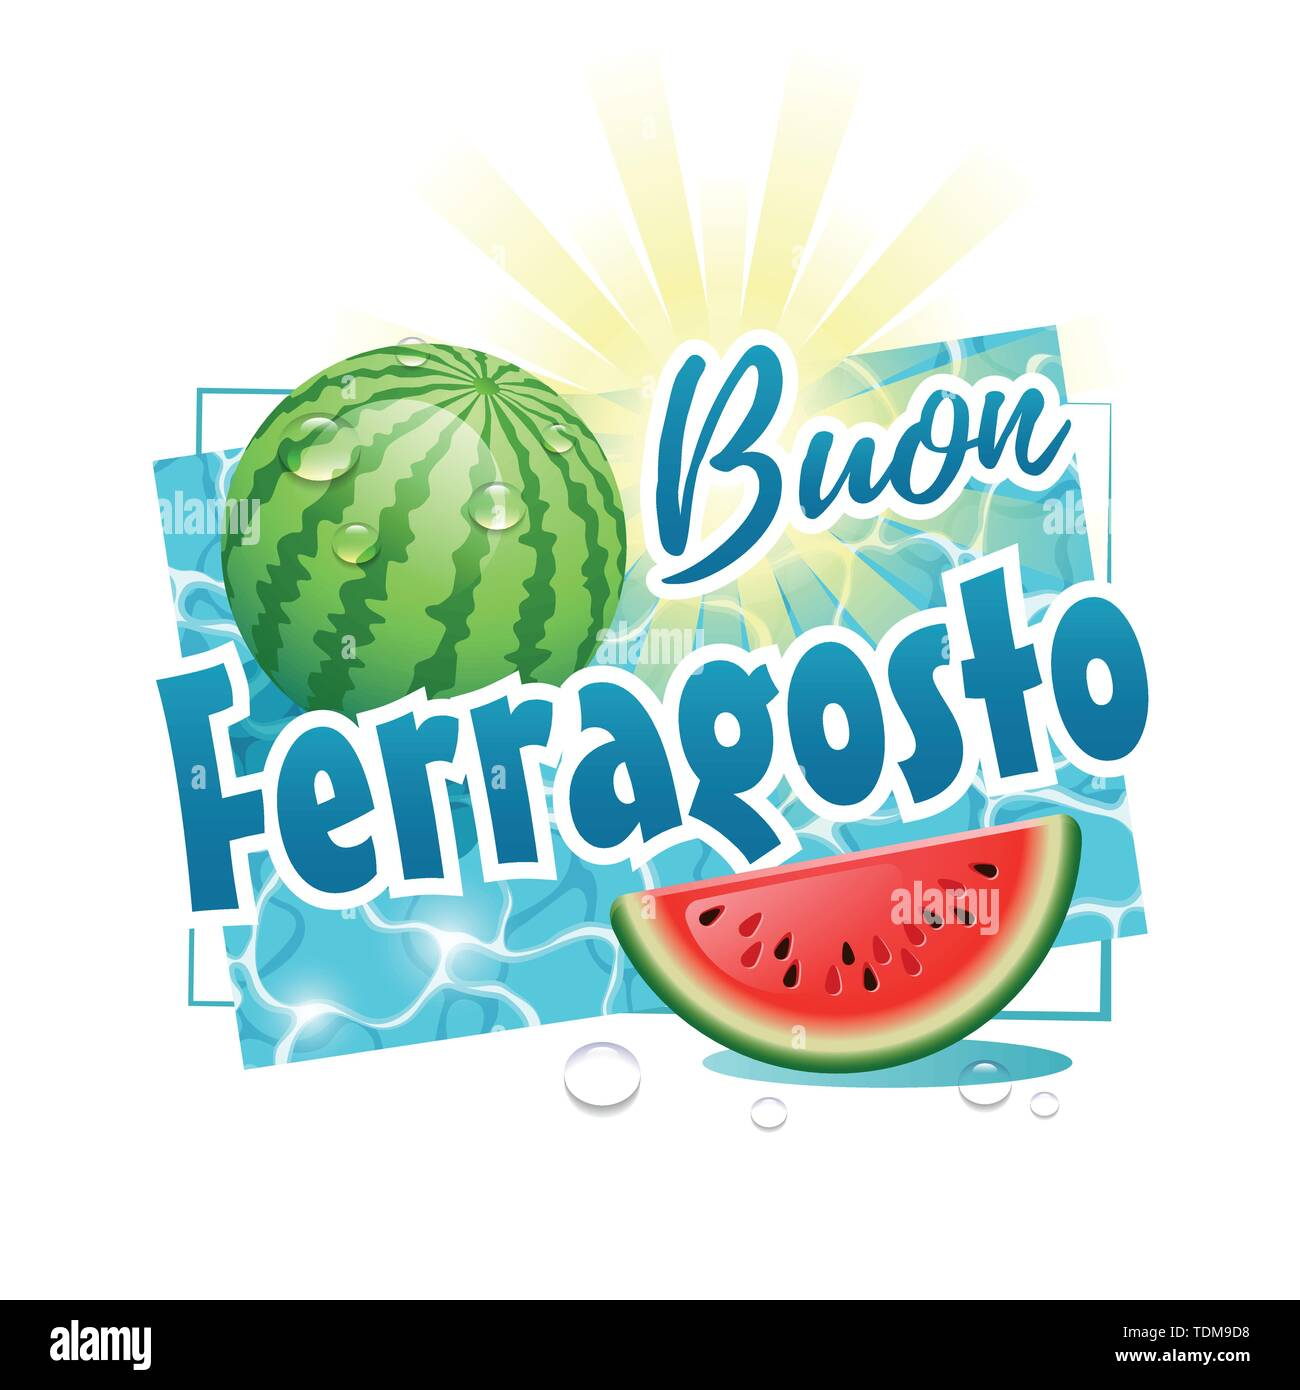 Buon Ferragosto. Happy Summer Holidays in Italian. Italian summer festival concept with watermelon, sun and water drops on a sunny water surface. Vect - Stock Image